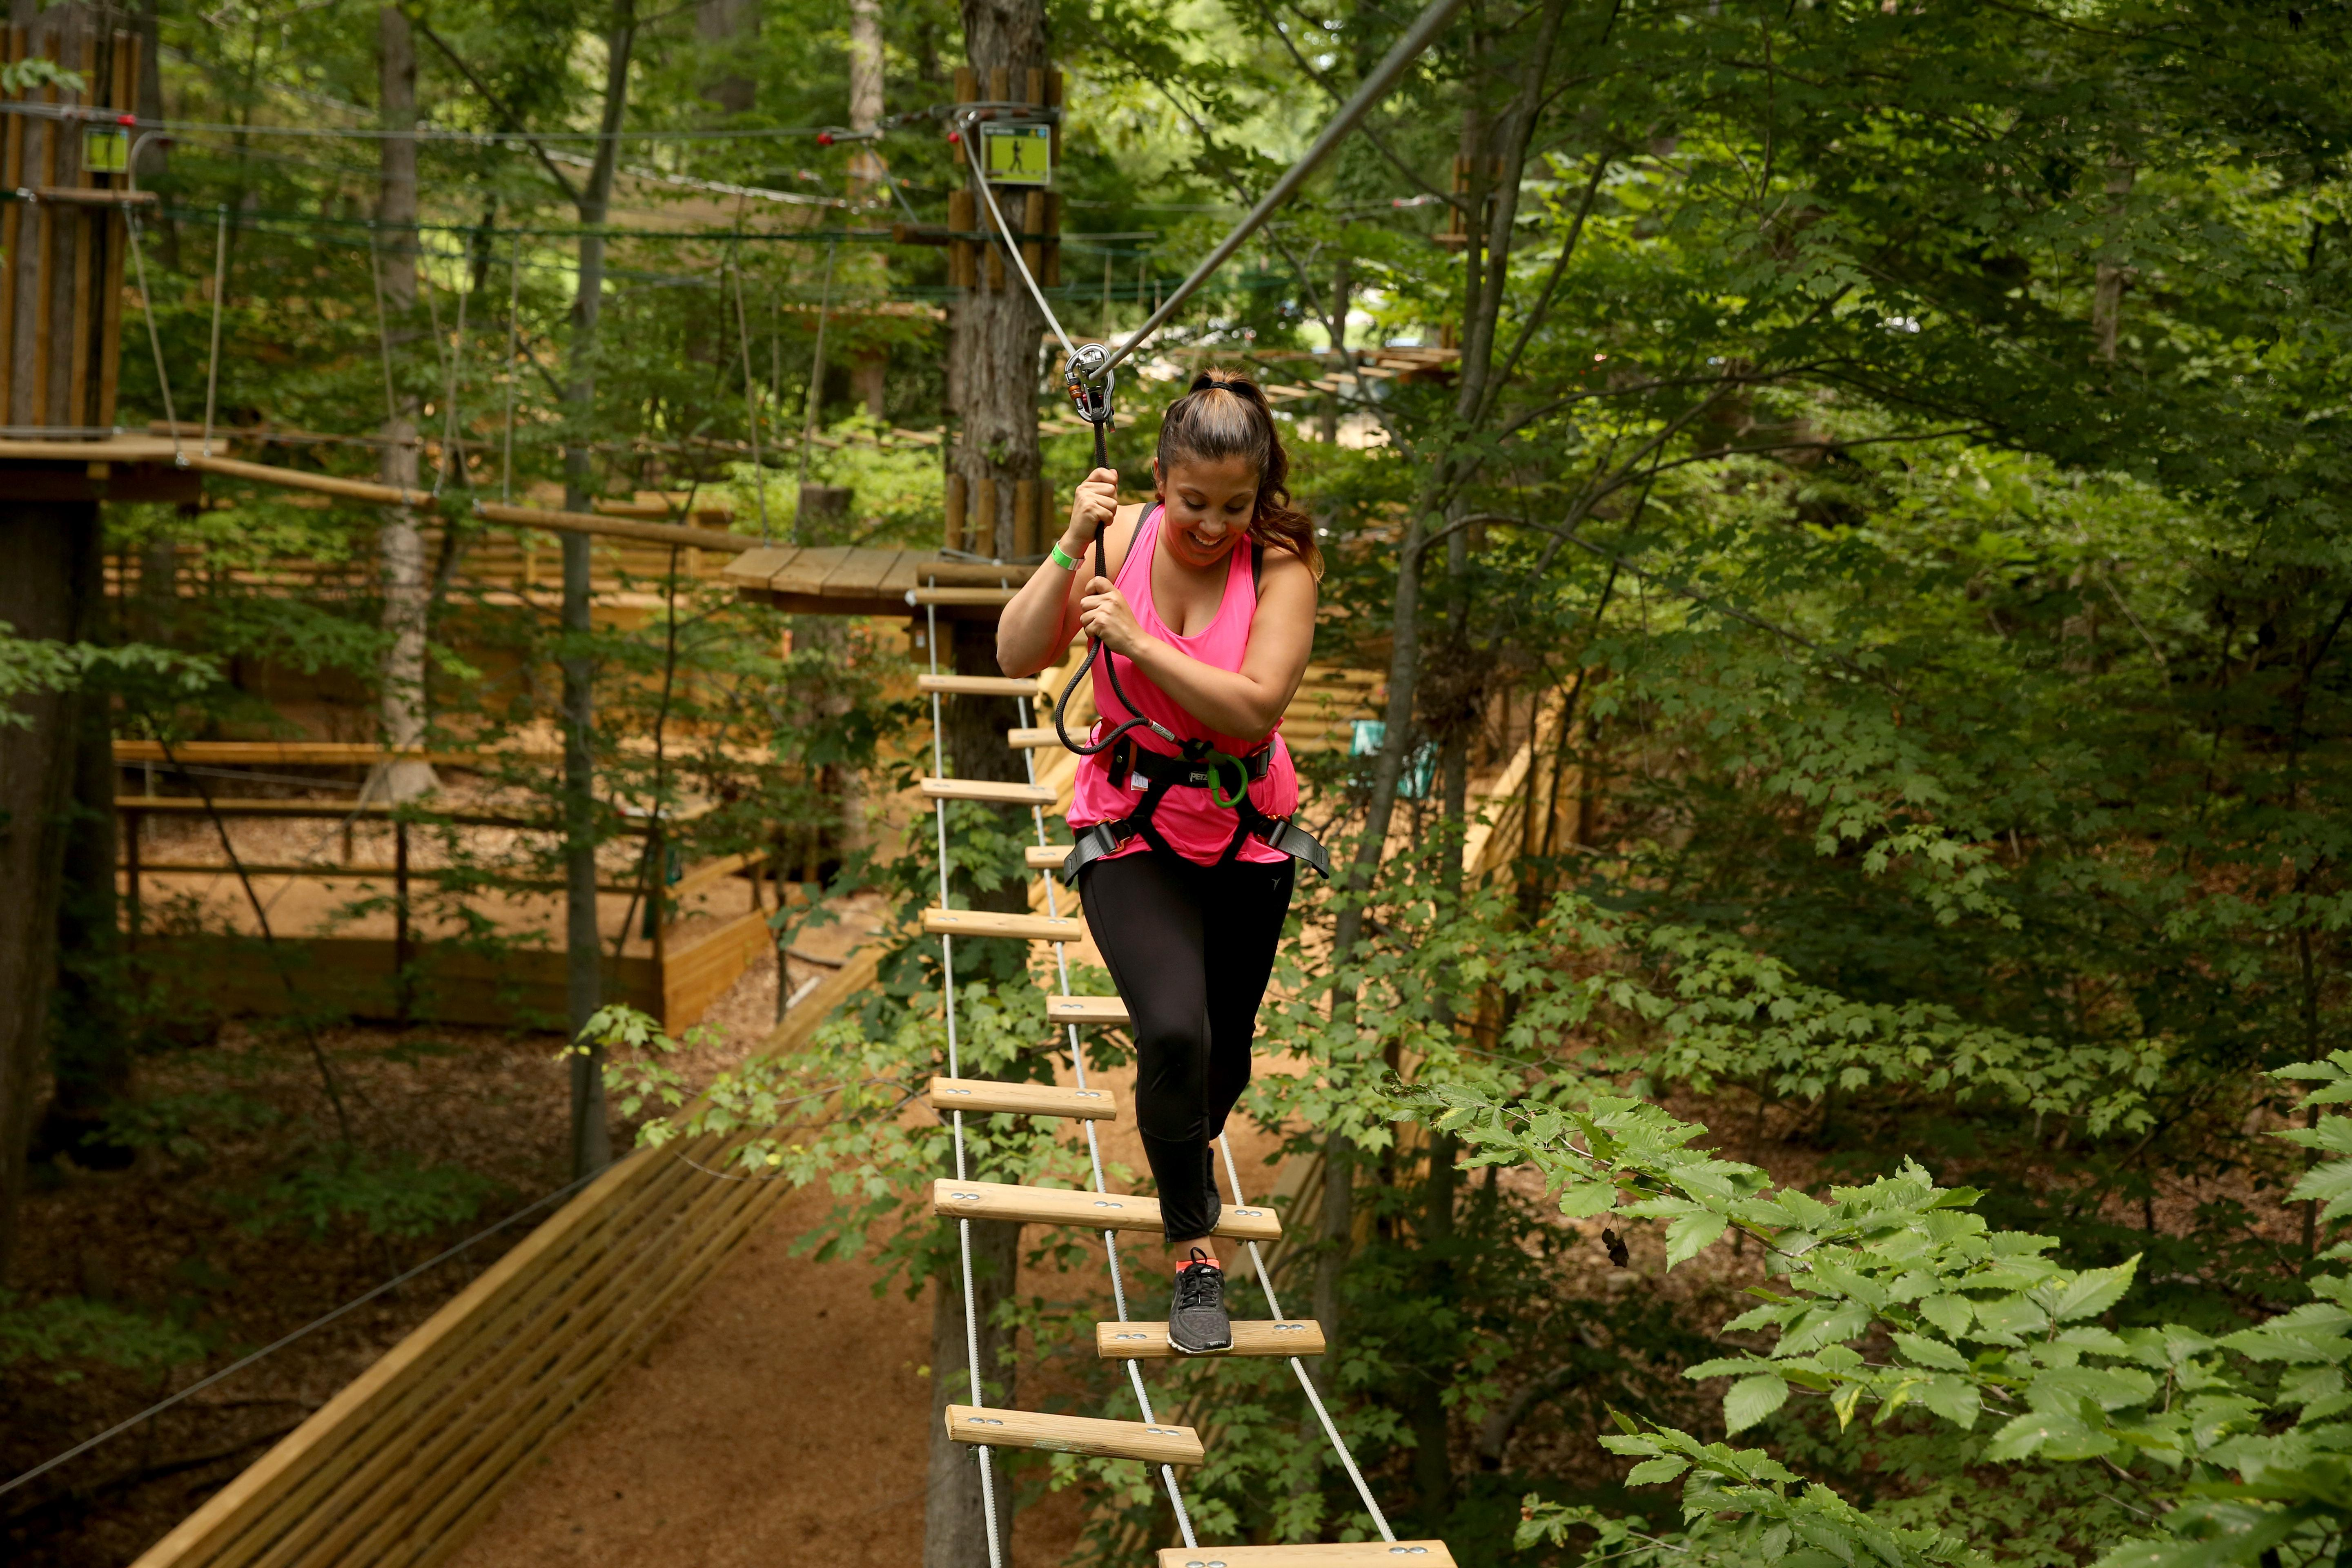 For adrenaline junkies, or those who want to test their fear of heights, Go Ape is the place to be. This treetop course is a fun activity with a diverse variety of challenges that include tarzan swings, ziplines, ladders and ropes. (Image: Amanda Andrade-Rhoades/ DC Refined)